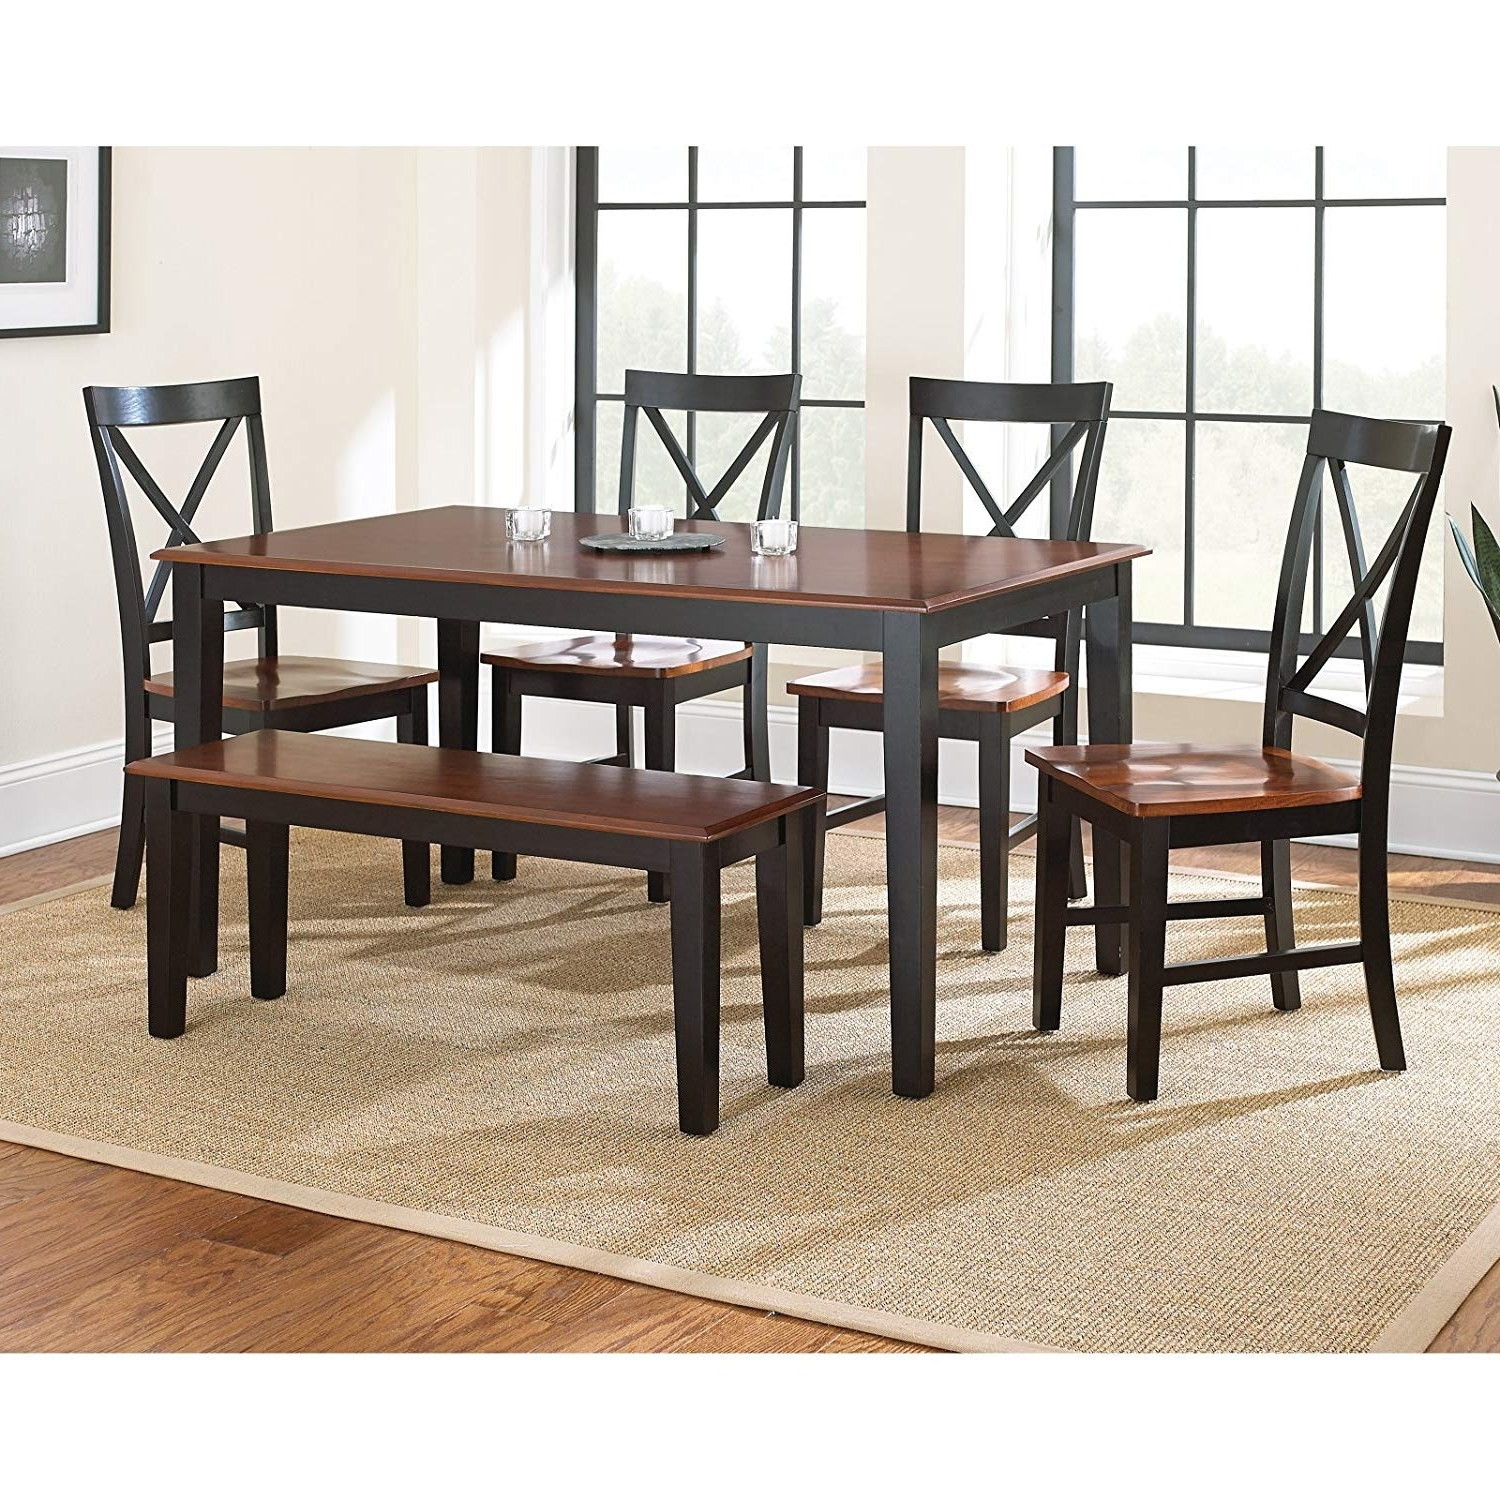 Kingston Dining Tables And Chairs Within Newest Amazon – Steve Silver Company Kingston Dining Table, Oak/black (View 17 of 25)